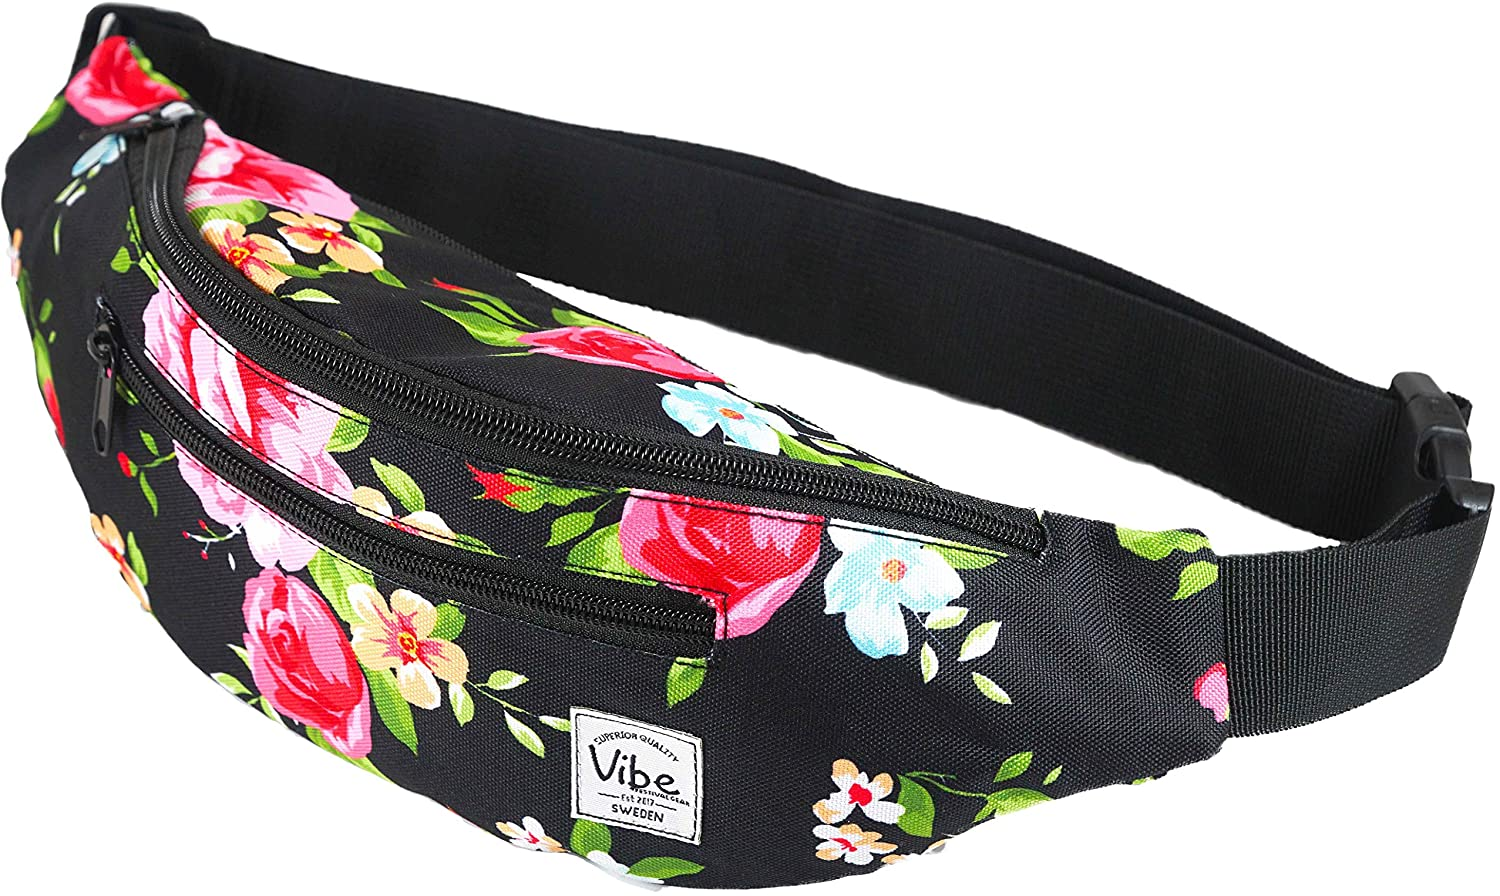 Vibe Festival Gear Fanny Pack for Men Women - Many Prints - Black Holographic Silver Gold Cute Waist Bag for Festival Rave Hiking Running Cycling